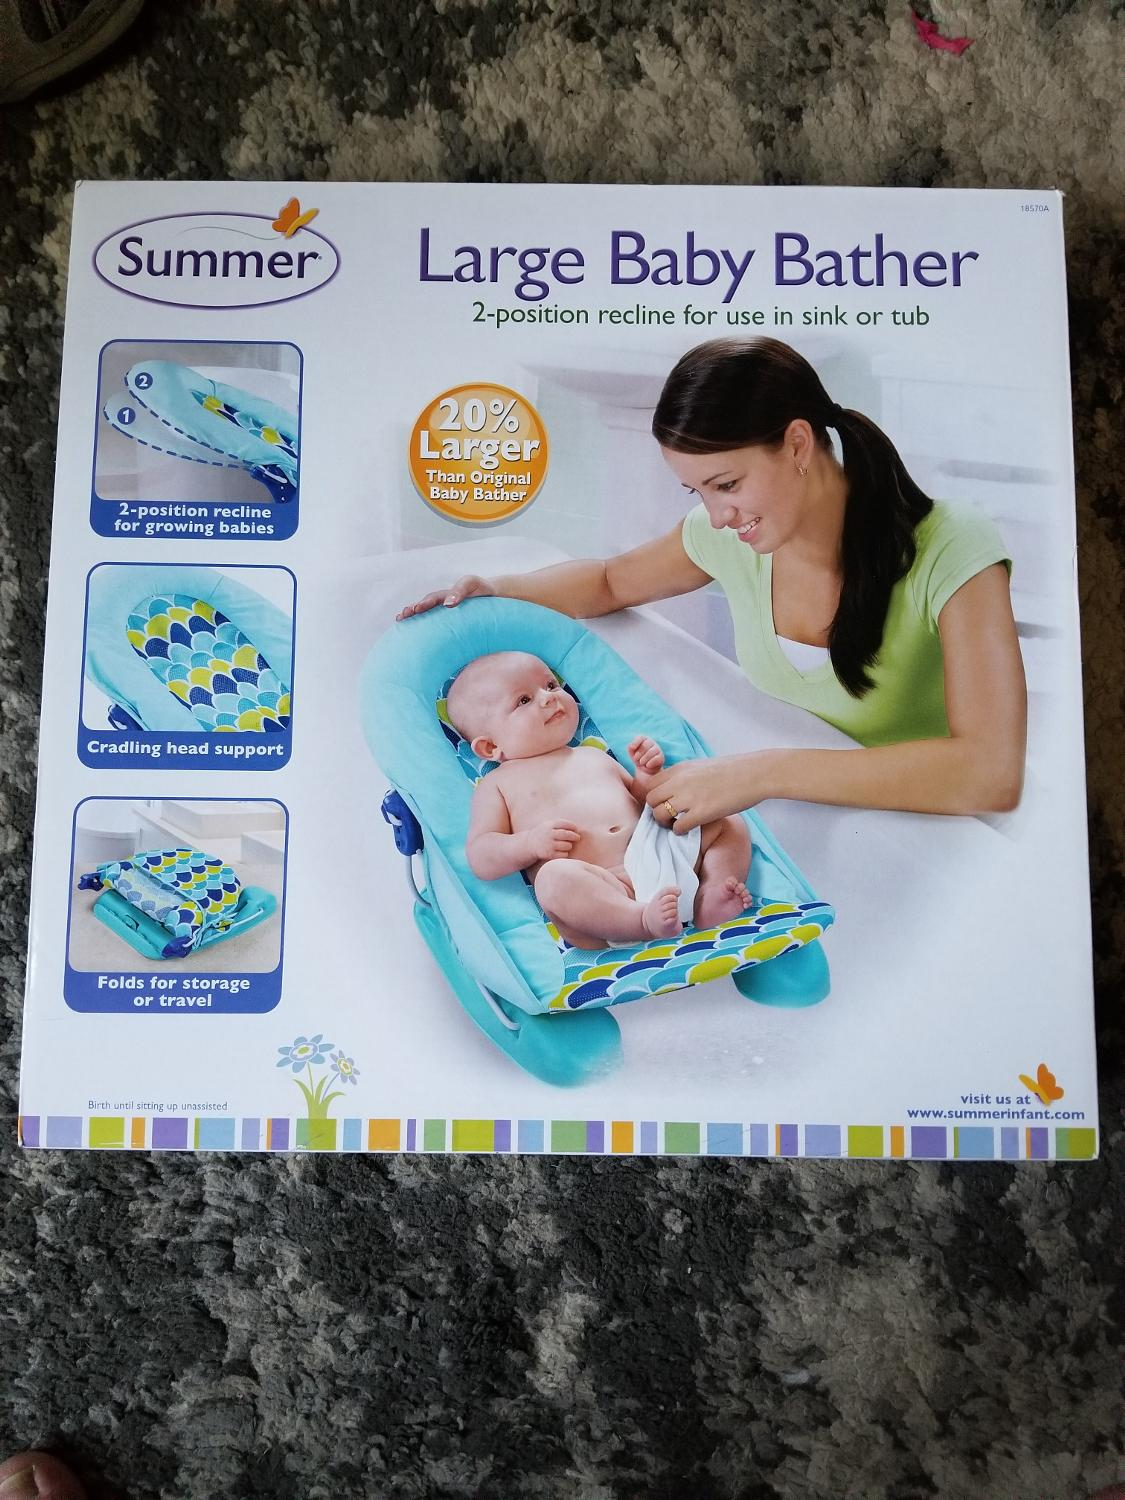 Best Baby Bather for sale in Appleton, Wisconsin for 2018